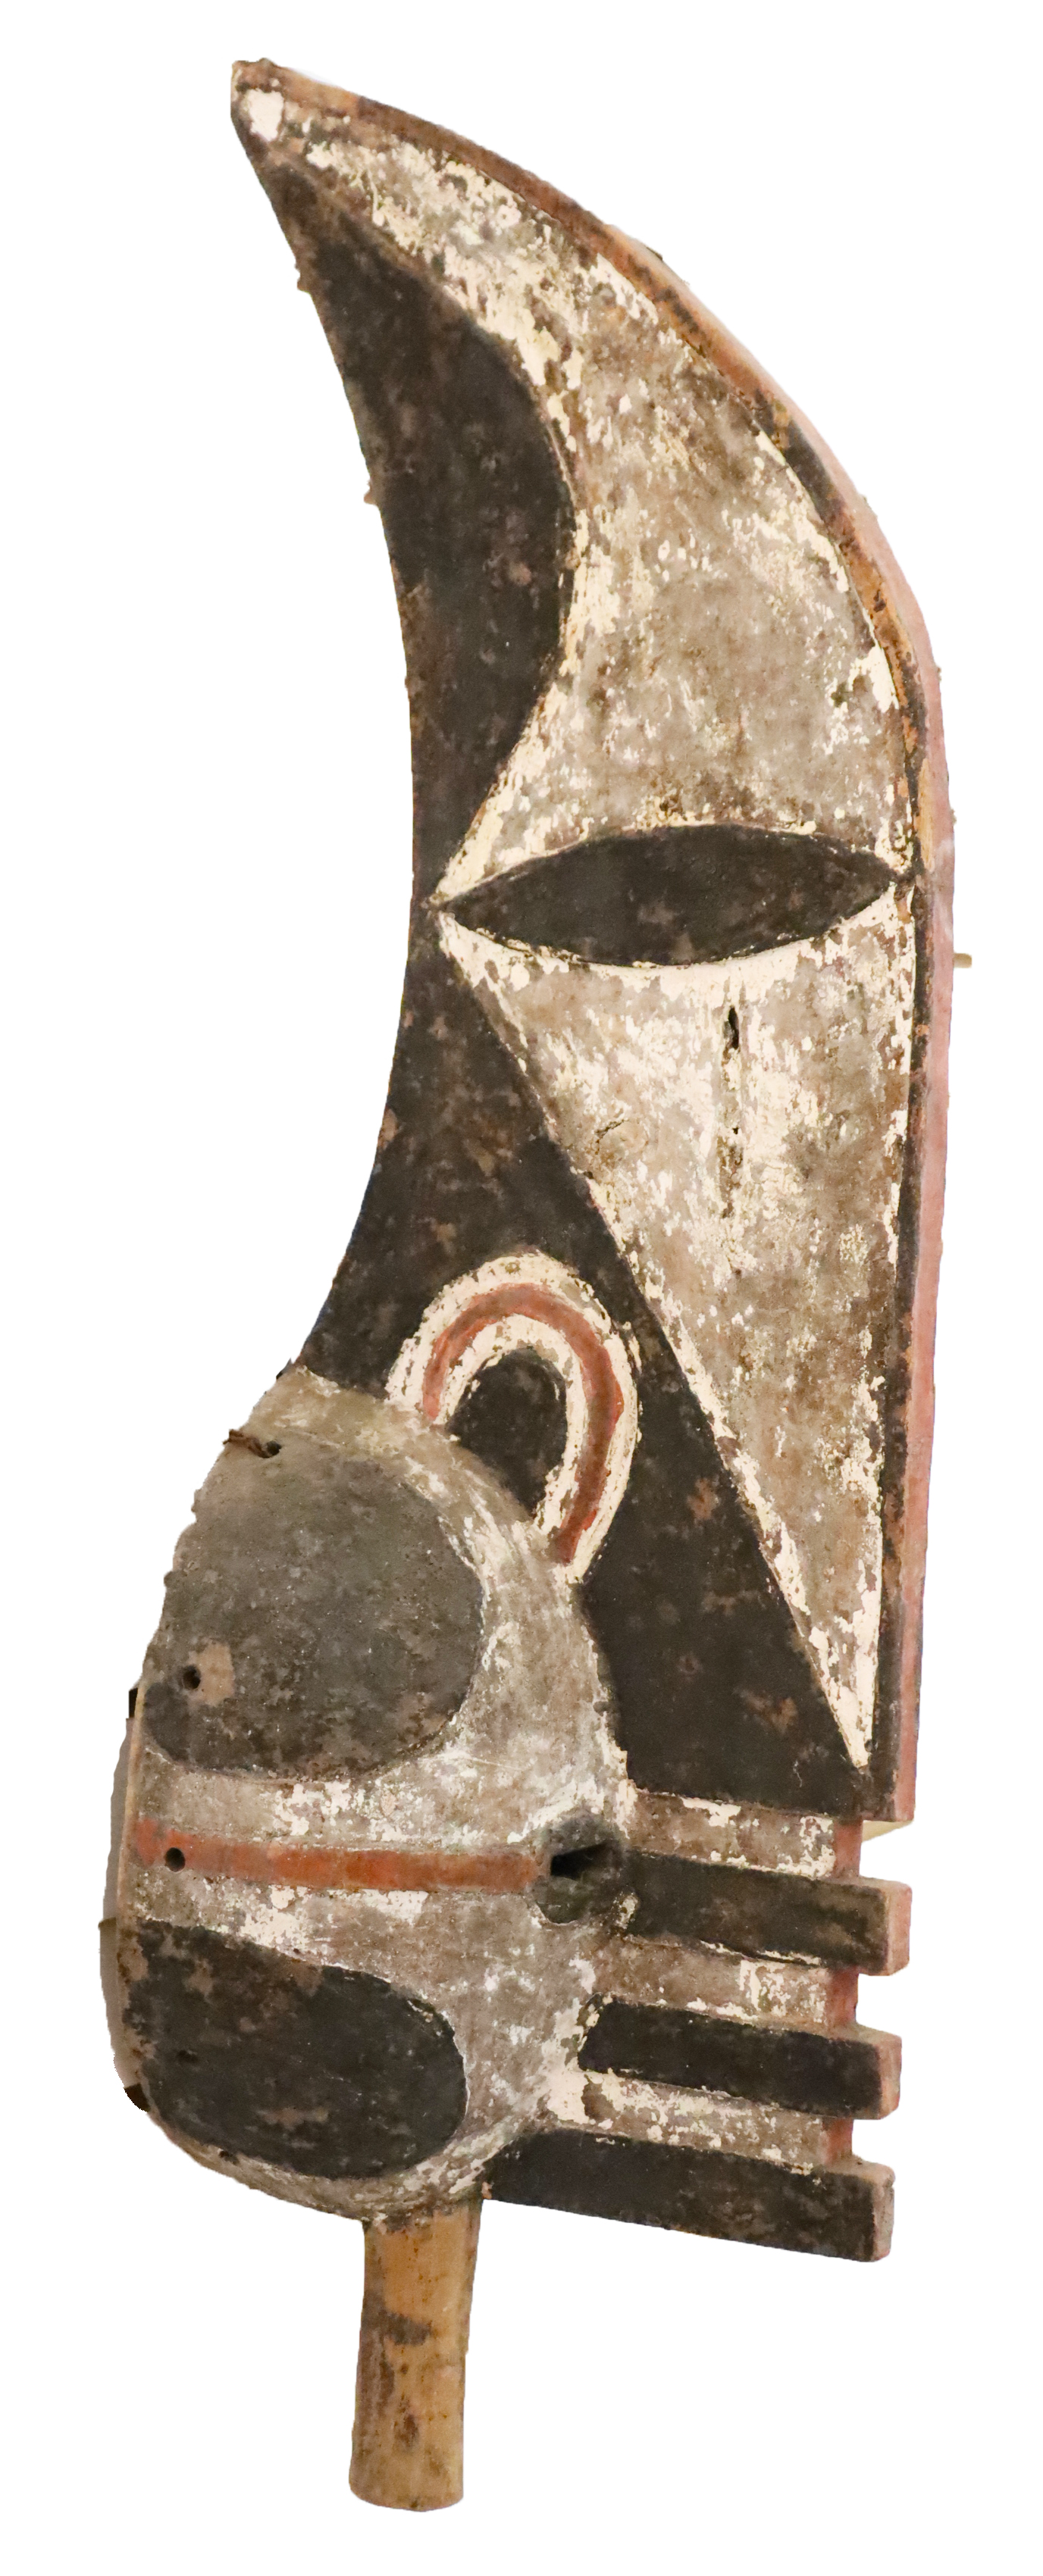 Papua New Guinea Polychrome Wood Mask Sculpture - Image 2 of 3